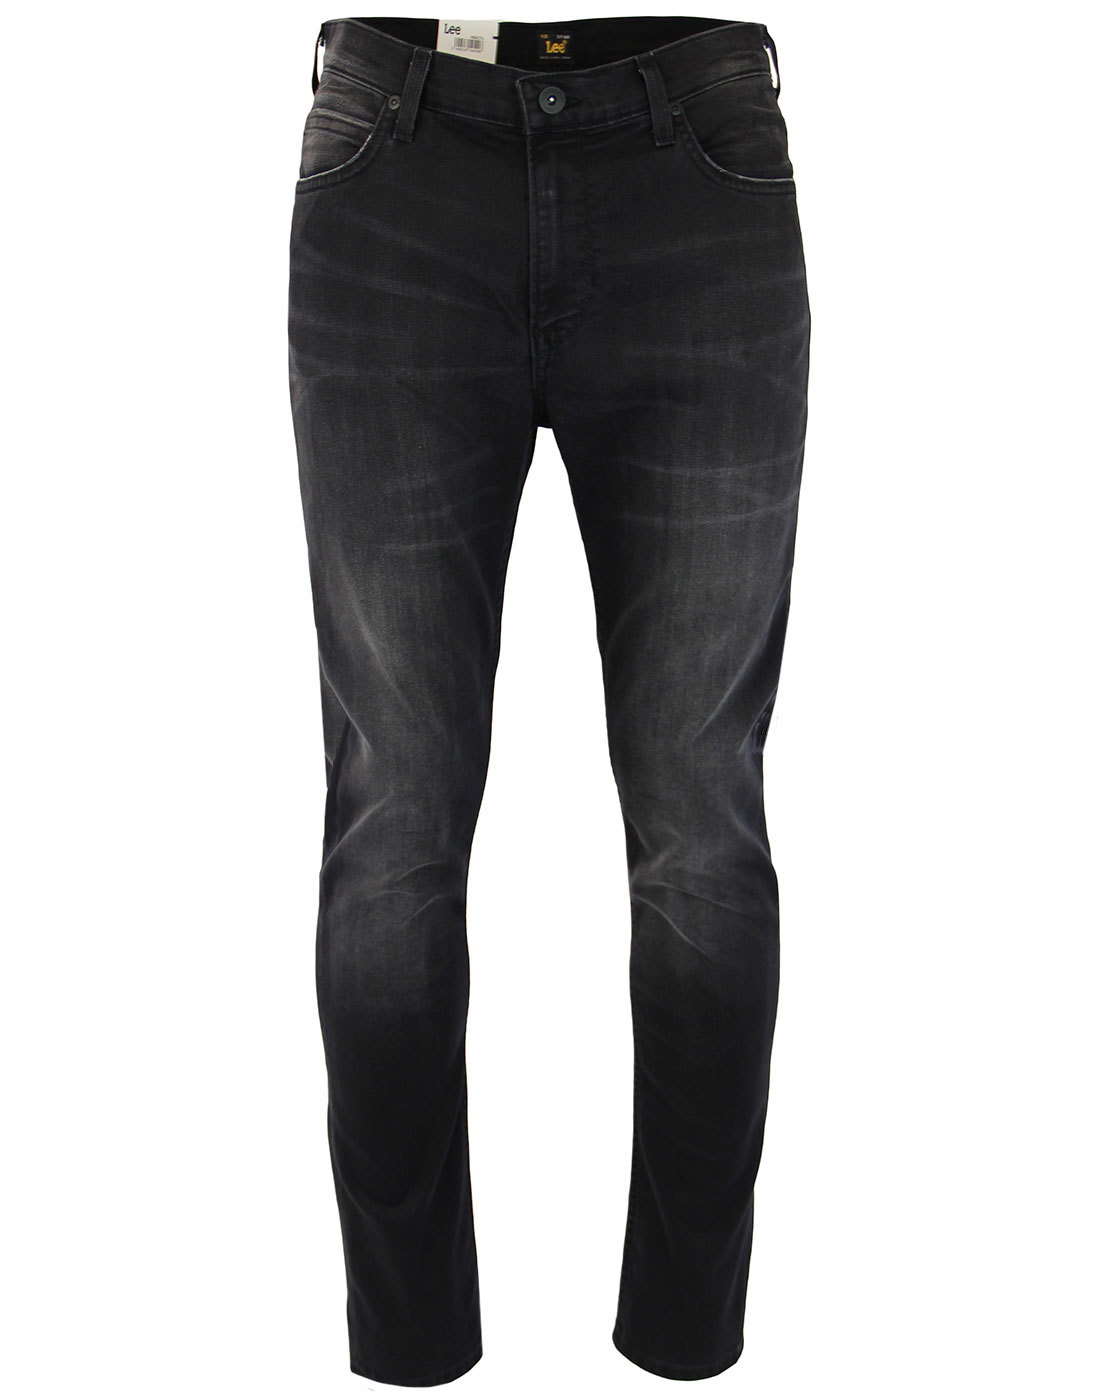 Rider LEE Men's Retro Slim Black Worn Denim Jeans